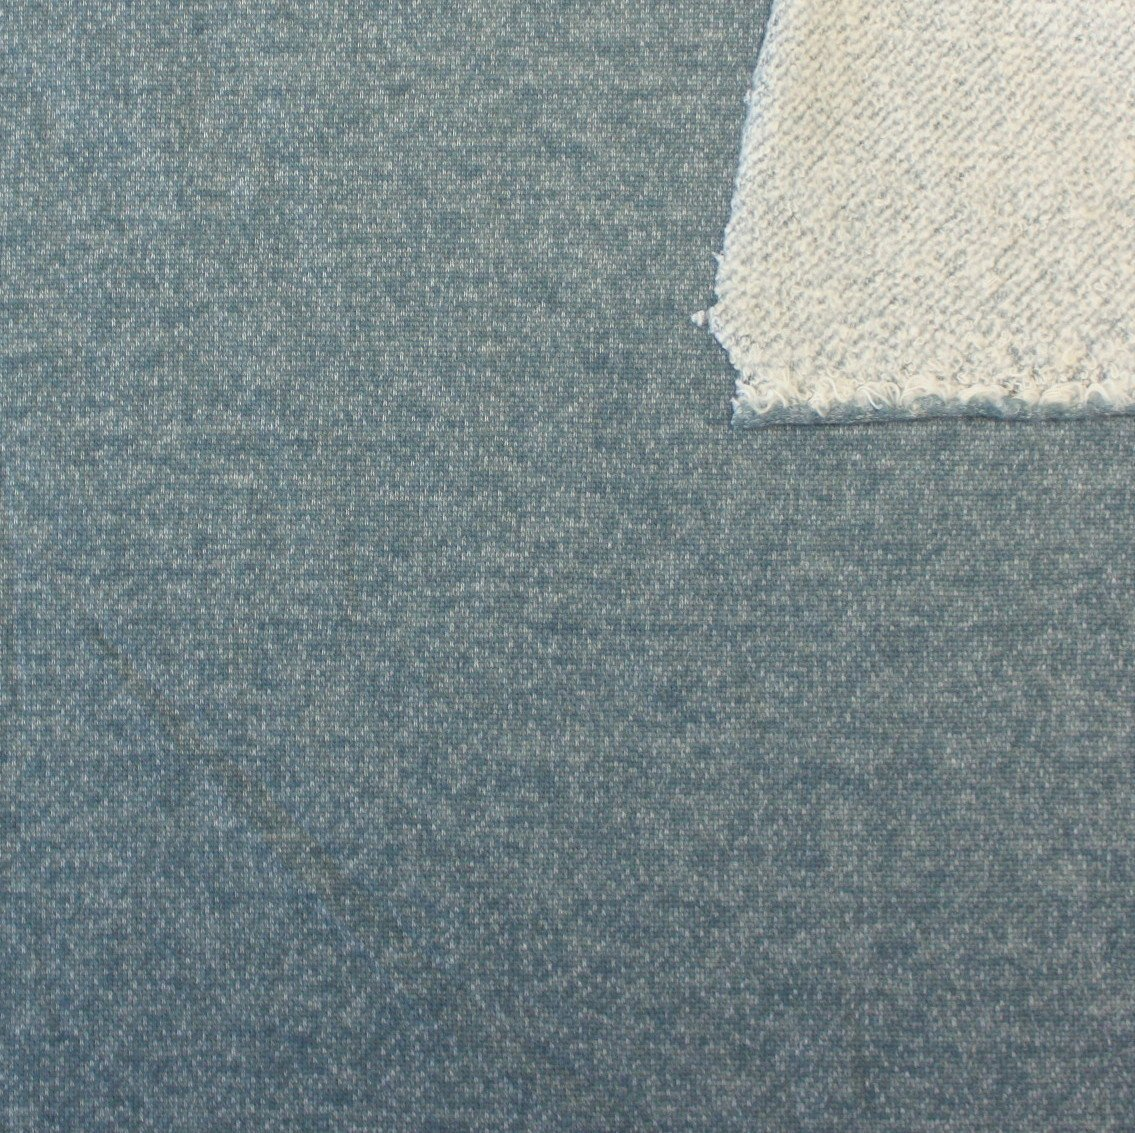 Dusty Teal Blue Brushed Heathered French Terry Knit Fabric, 1 Yard - Raspberry Creek Fabrics